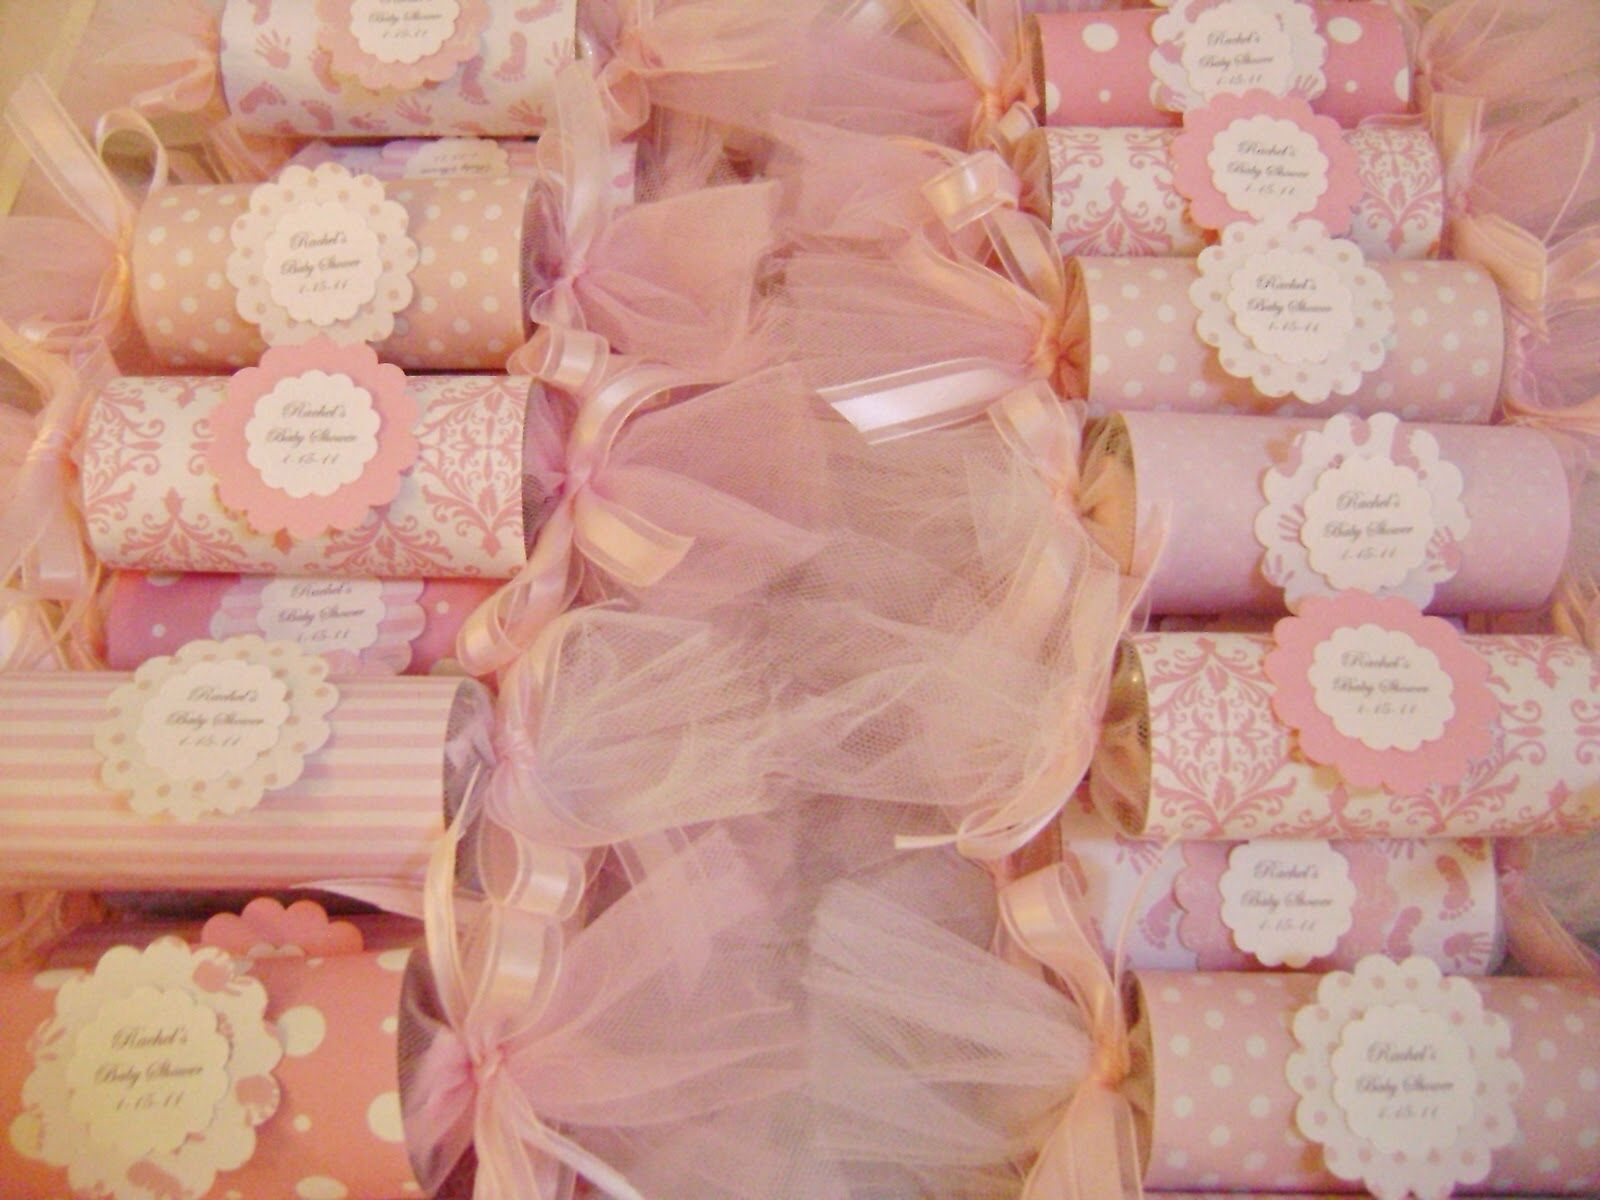 pink baby shower centerpiece wrap toilet paper rolls and fill with candies wrapped in tulle. Black Bedroom Furniture Sets. Home Design Ideas